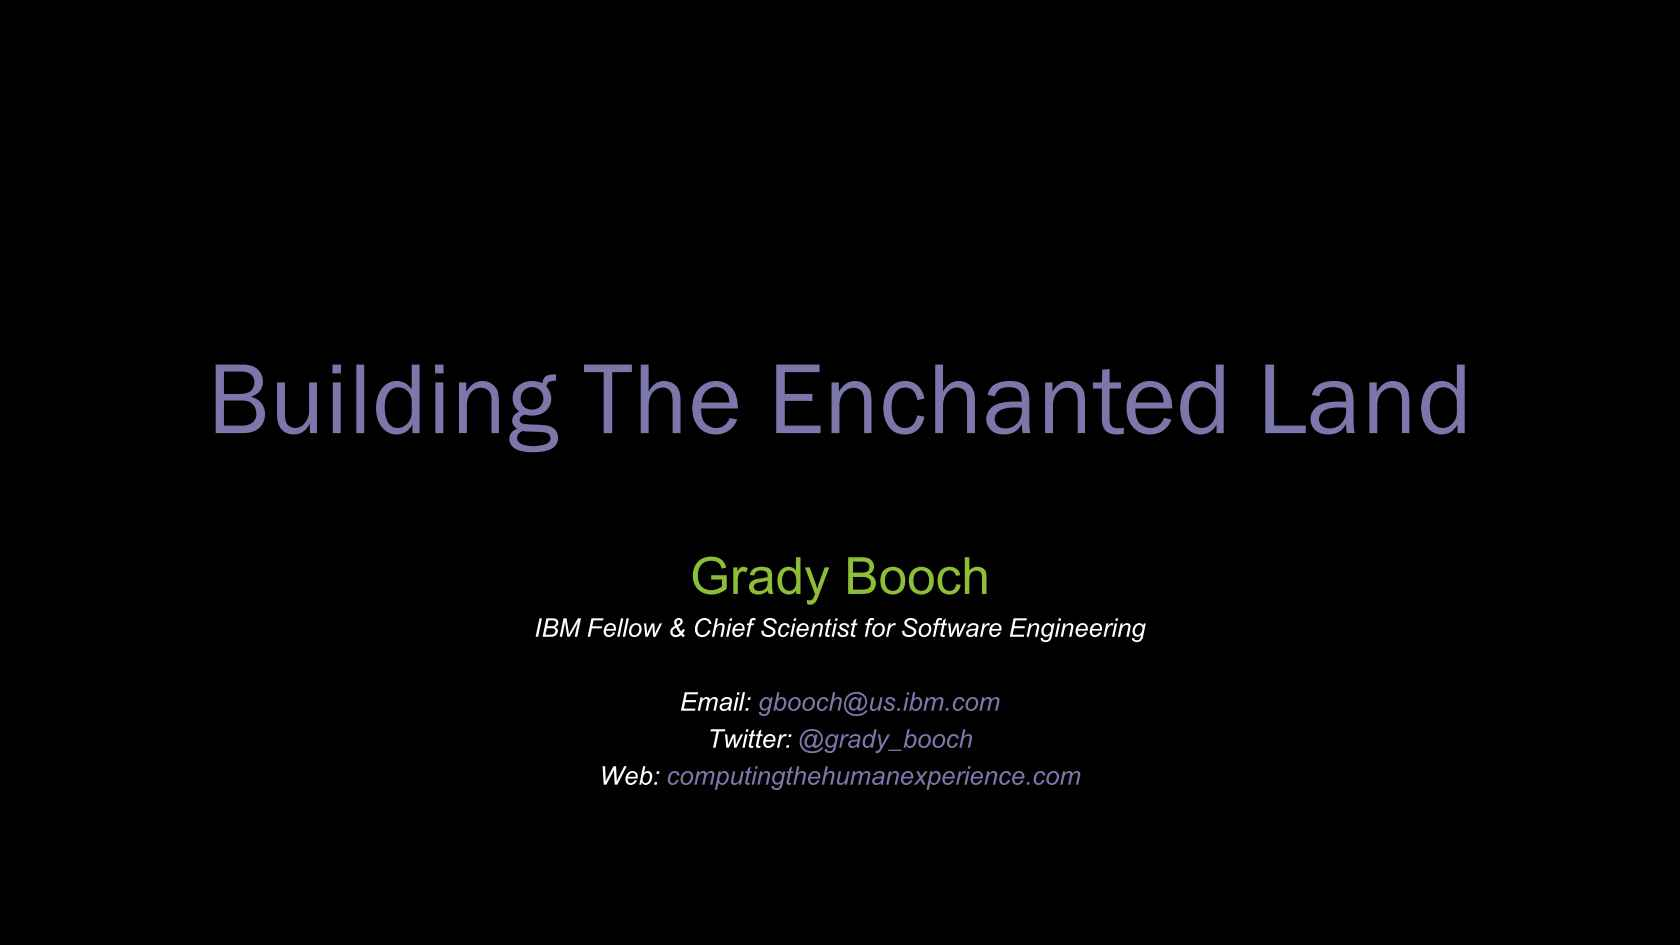 Building the Enchanted Land